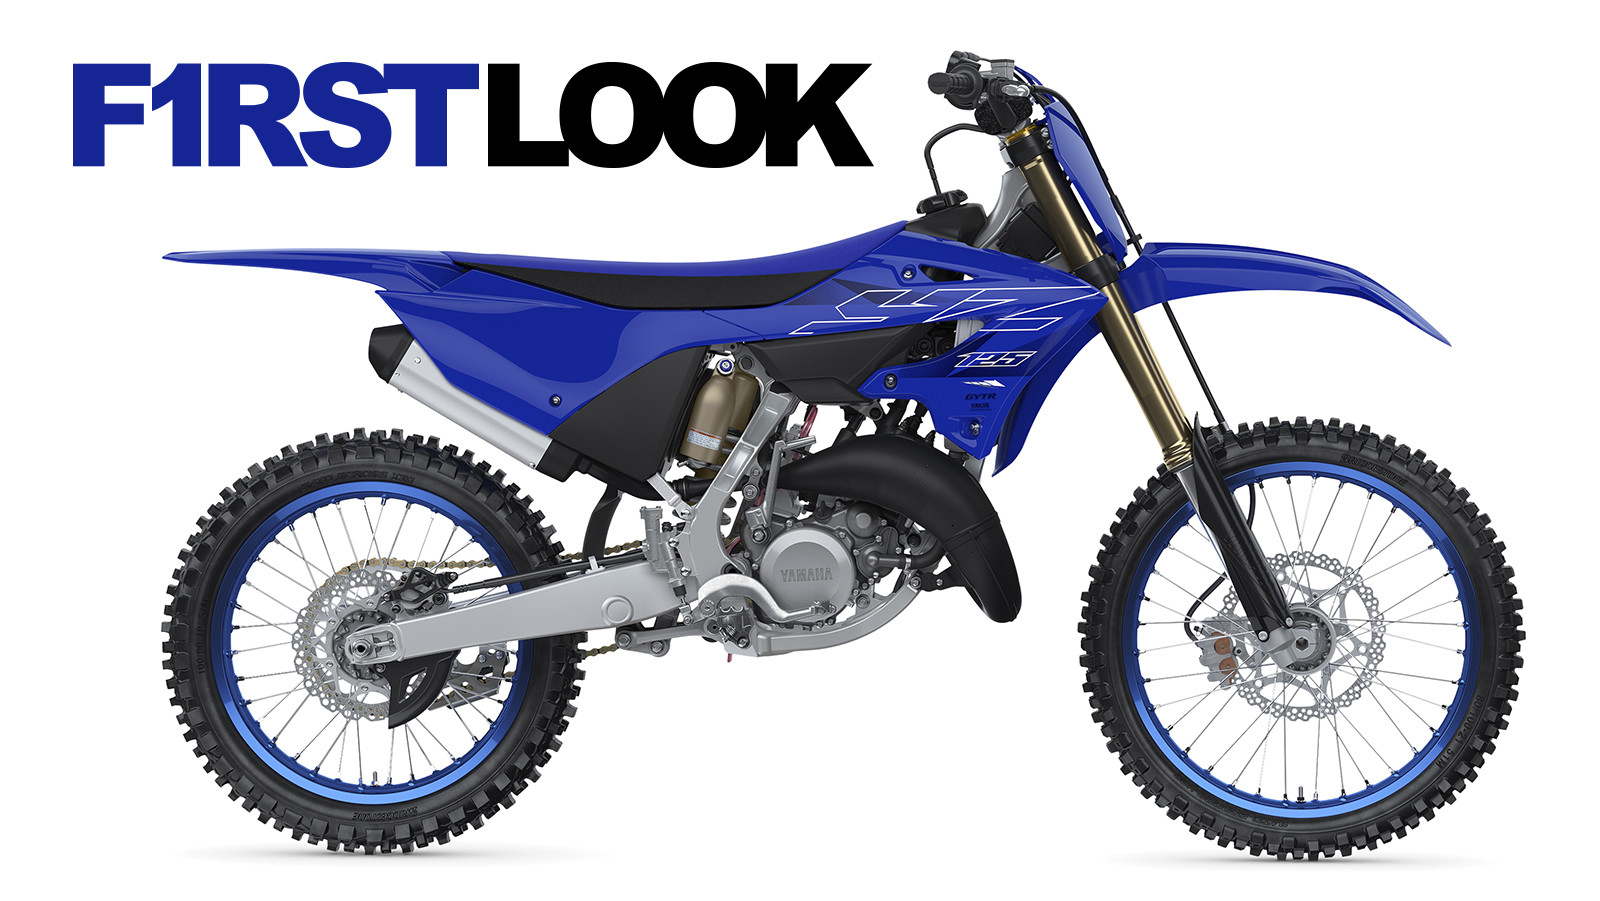 First Look: 2022 Yamaha Motocross and Cross Country Bikes